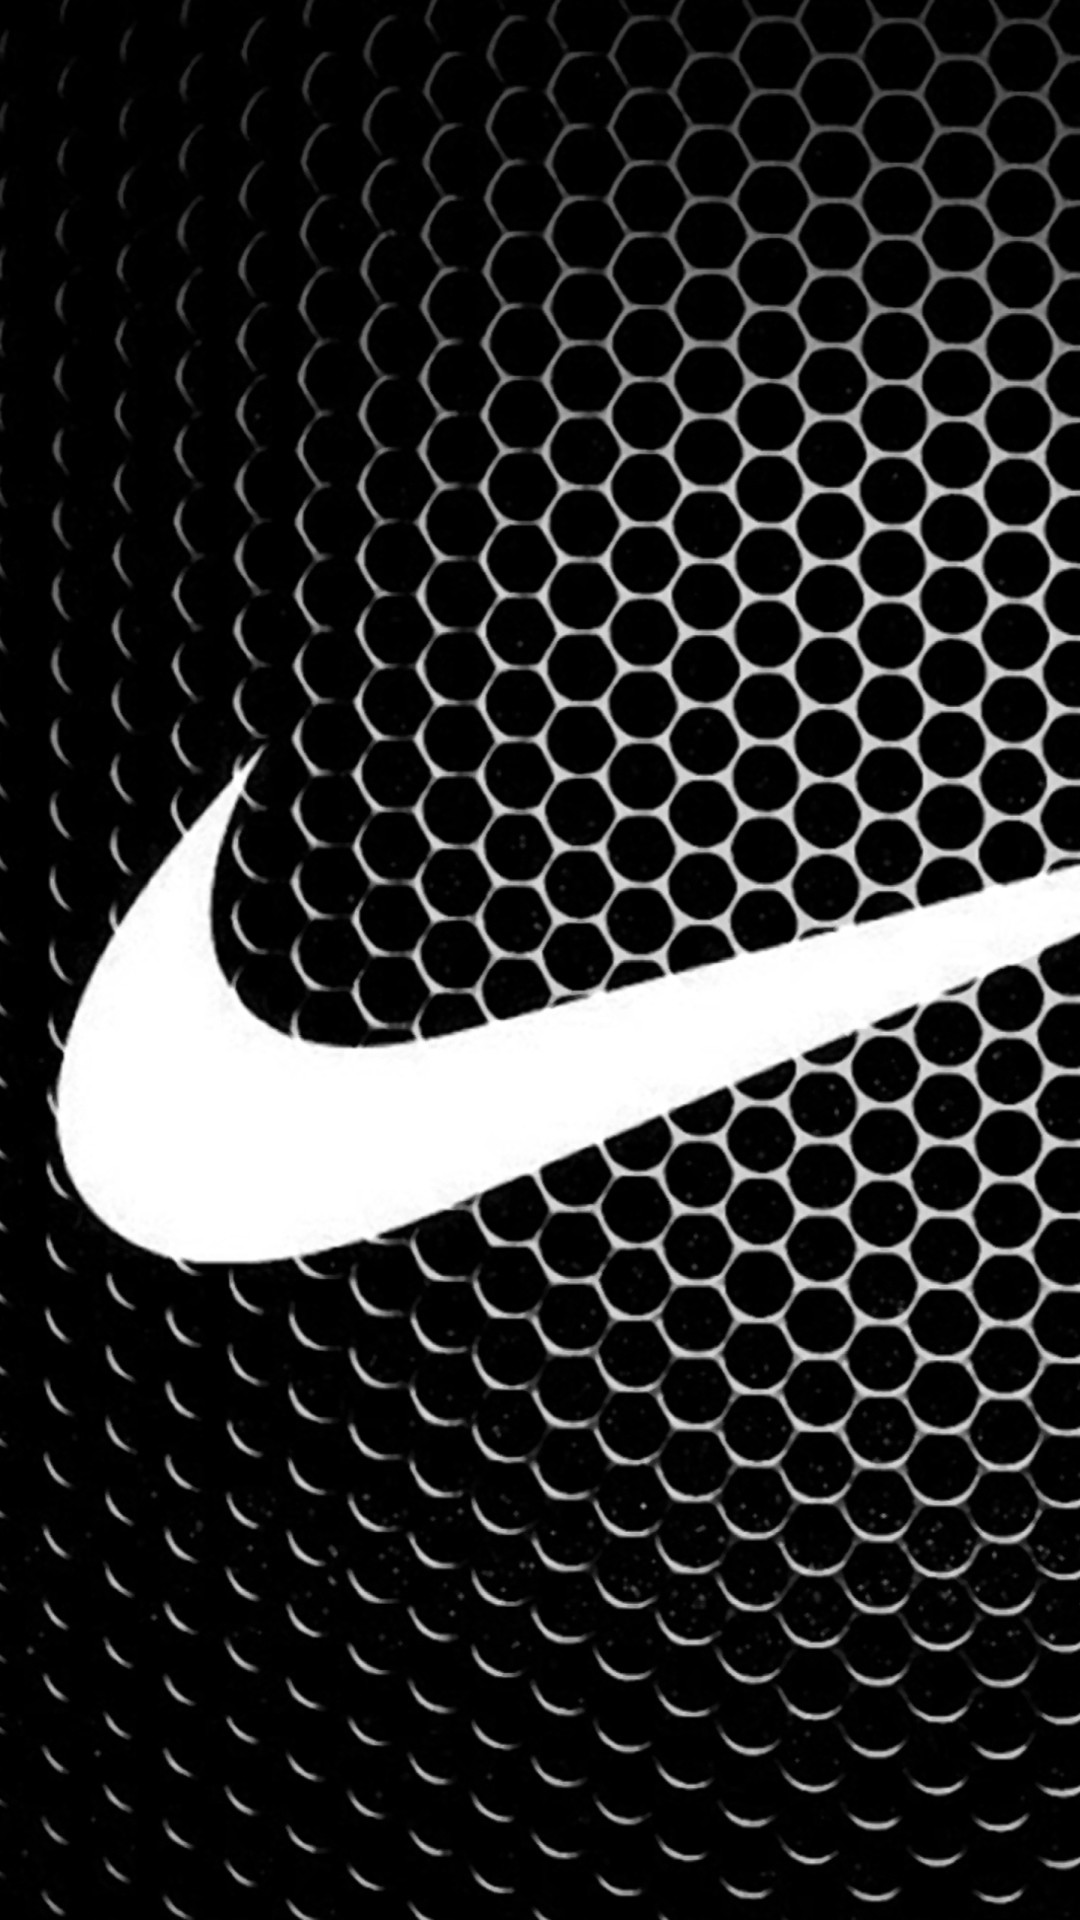 Nike Wallpaper HD for Iphone.